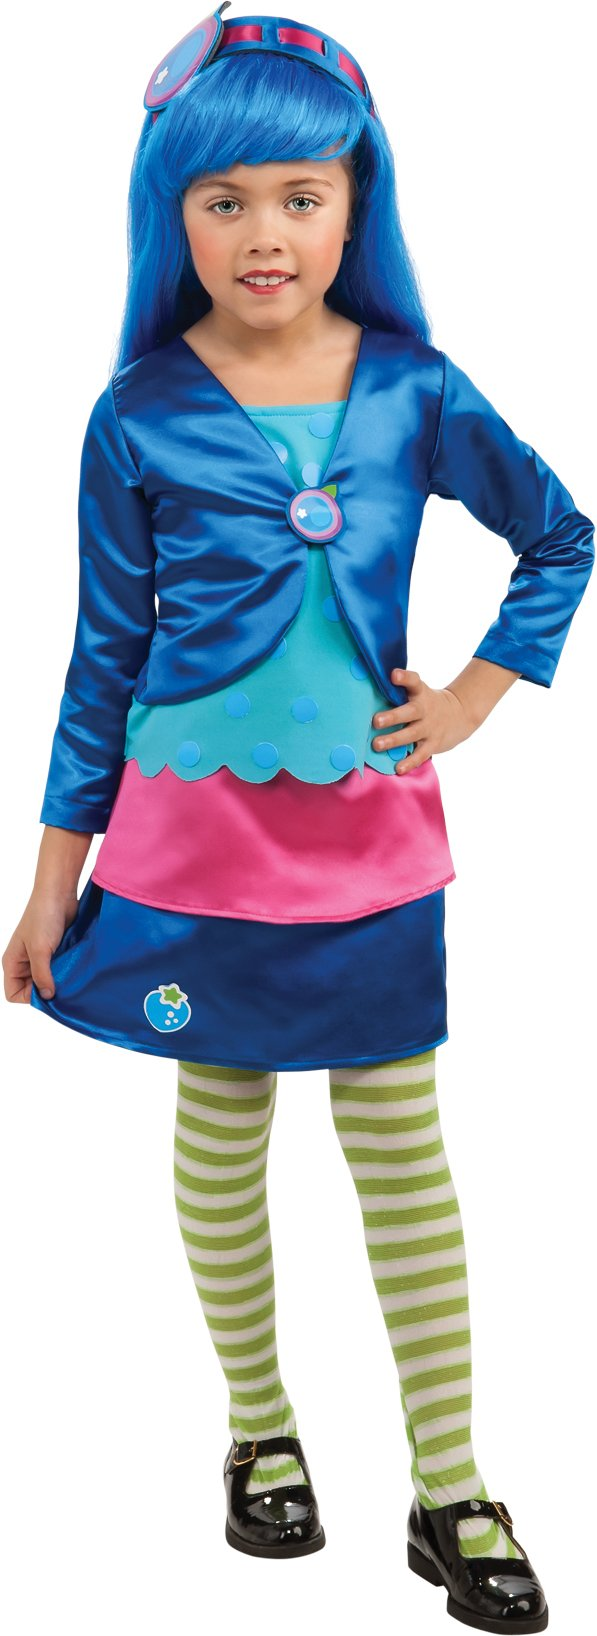 Strawberry Shortcake - Blueberry Muffin Deluxe Toddler / Child C